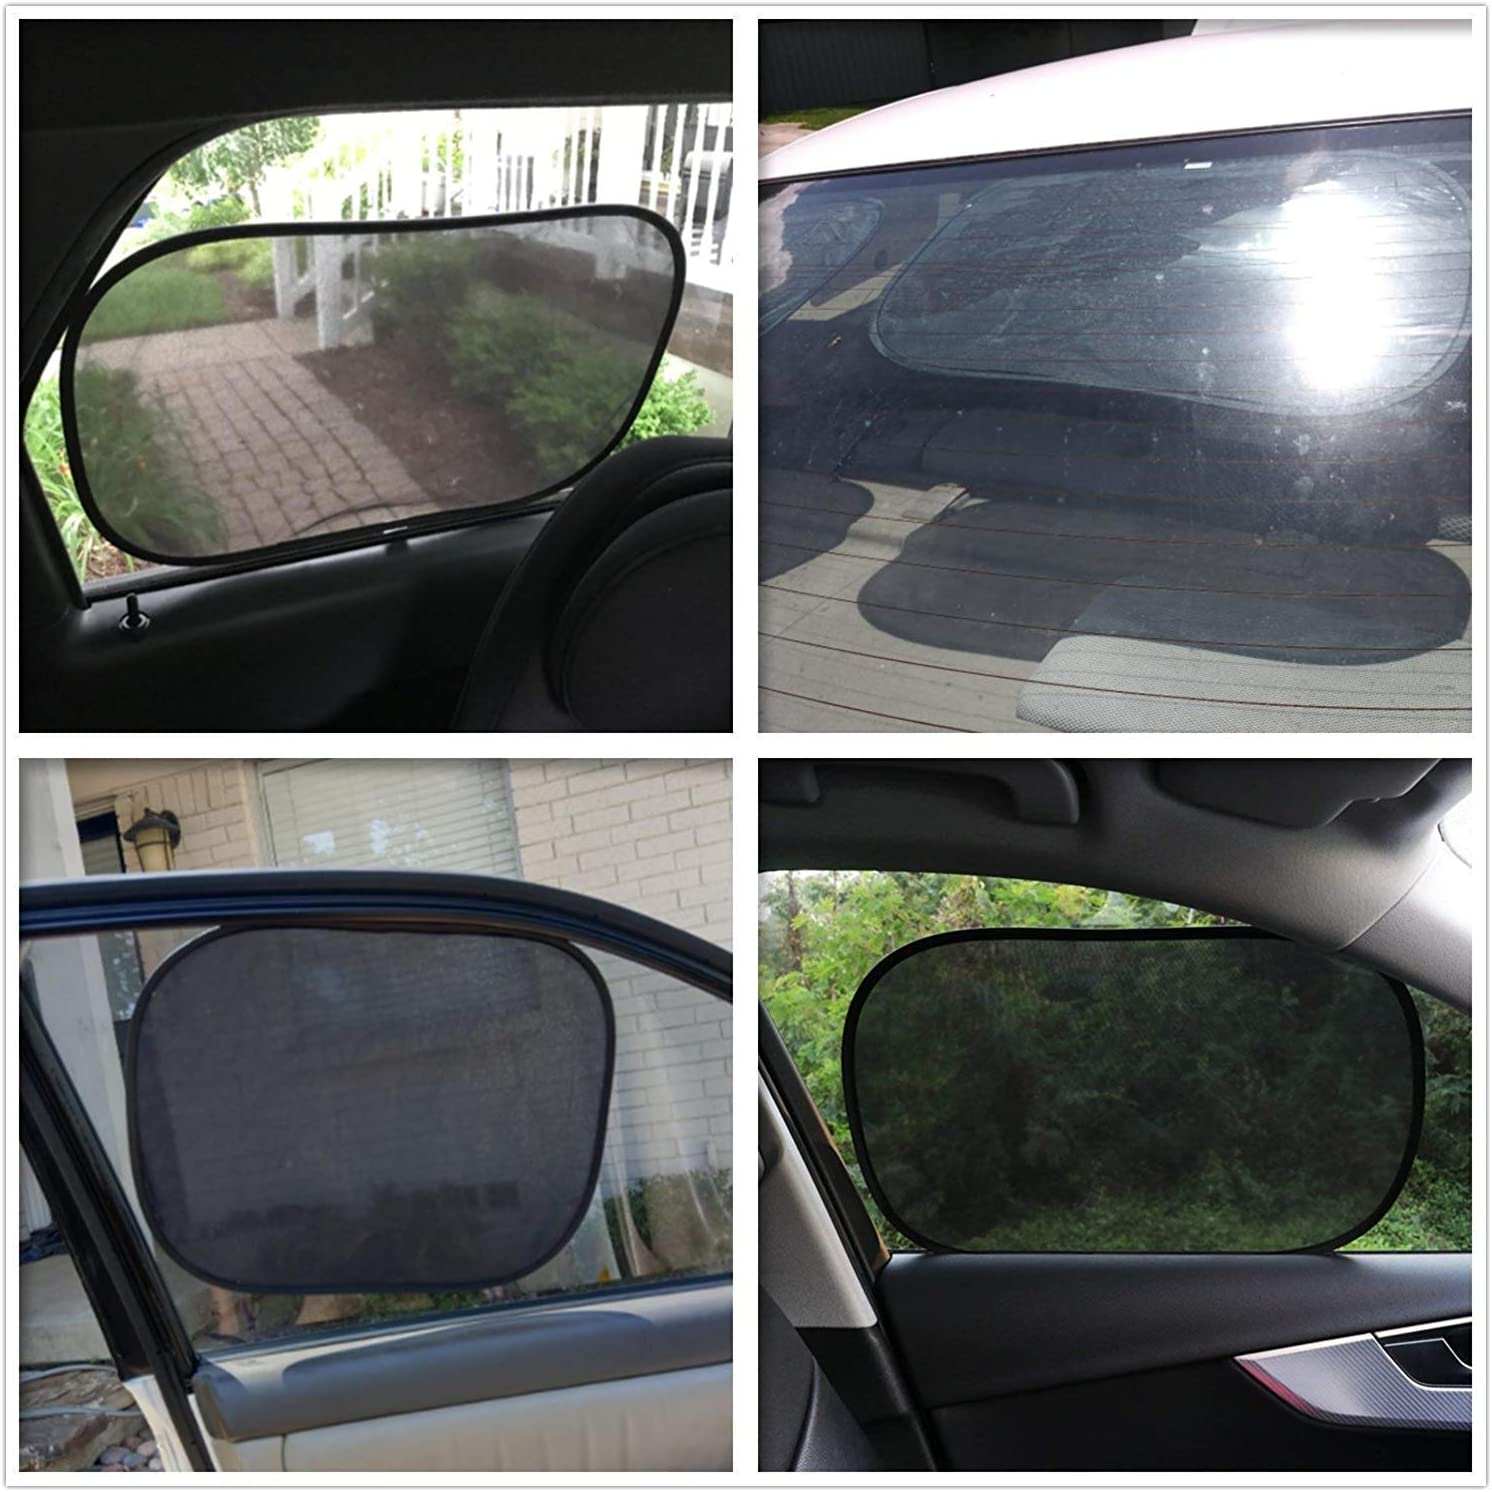 30cm and 2 Pack 44*36cm in a Handy Pouch Suitable For Most Vehicles-Black 2 Pack 50 Sun Shade for Car Window,Car Sun Shade for Baby /& KidsCar Sun Protector Block UV Rays Car Window Shade Blinds